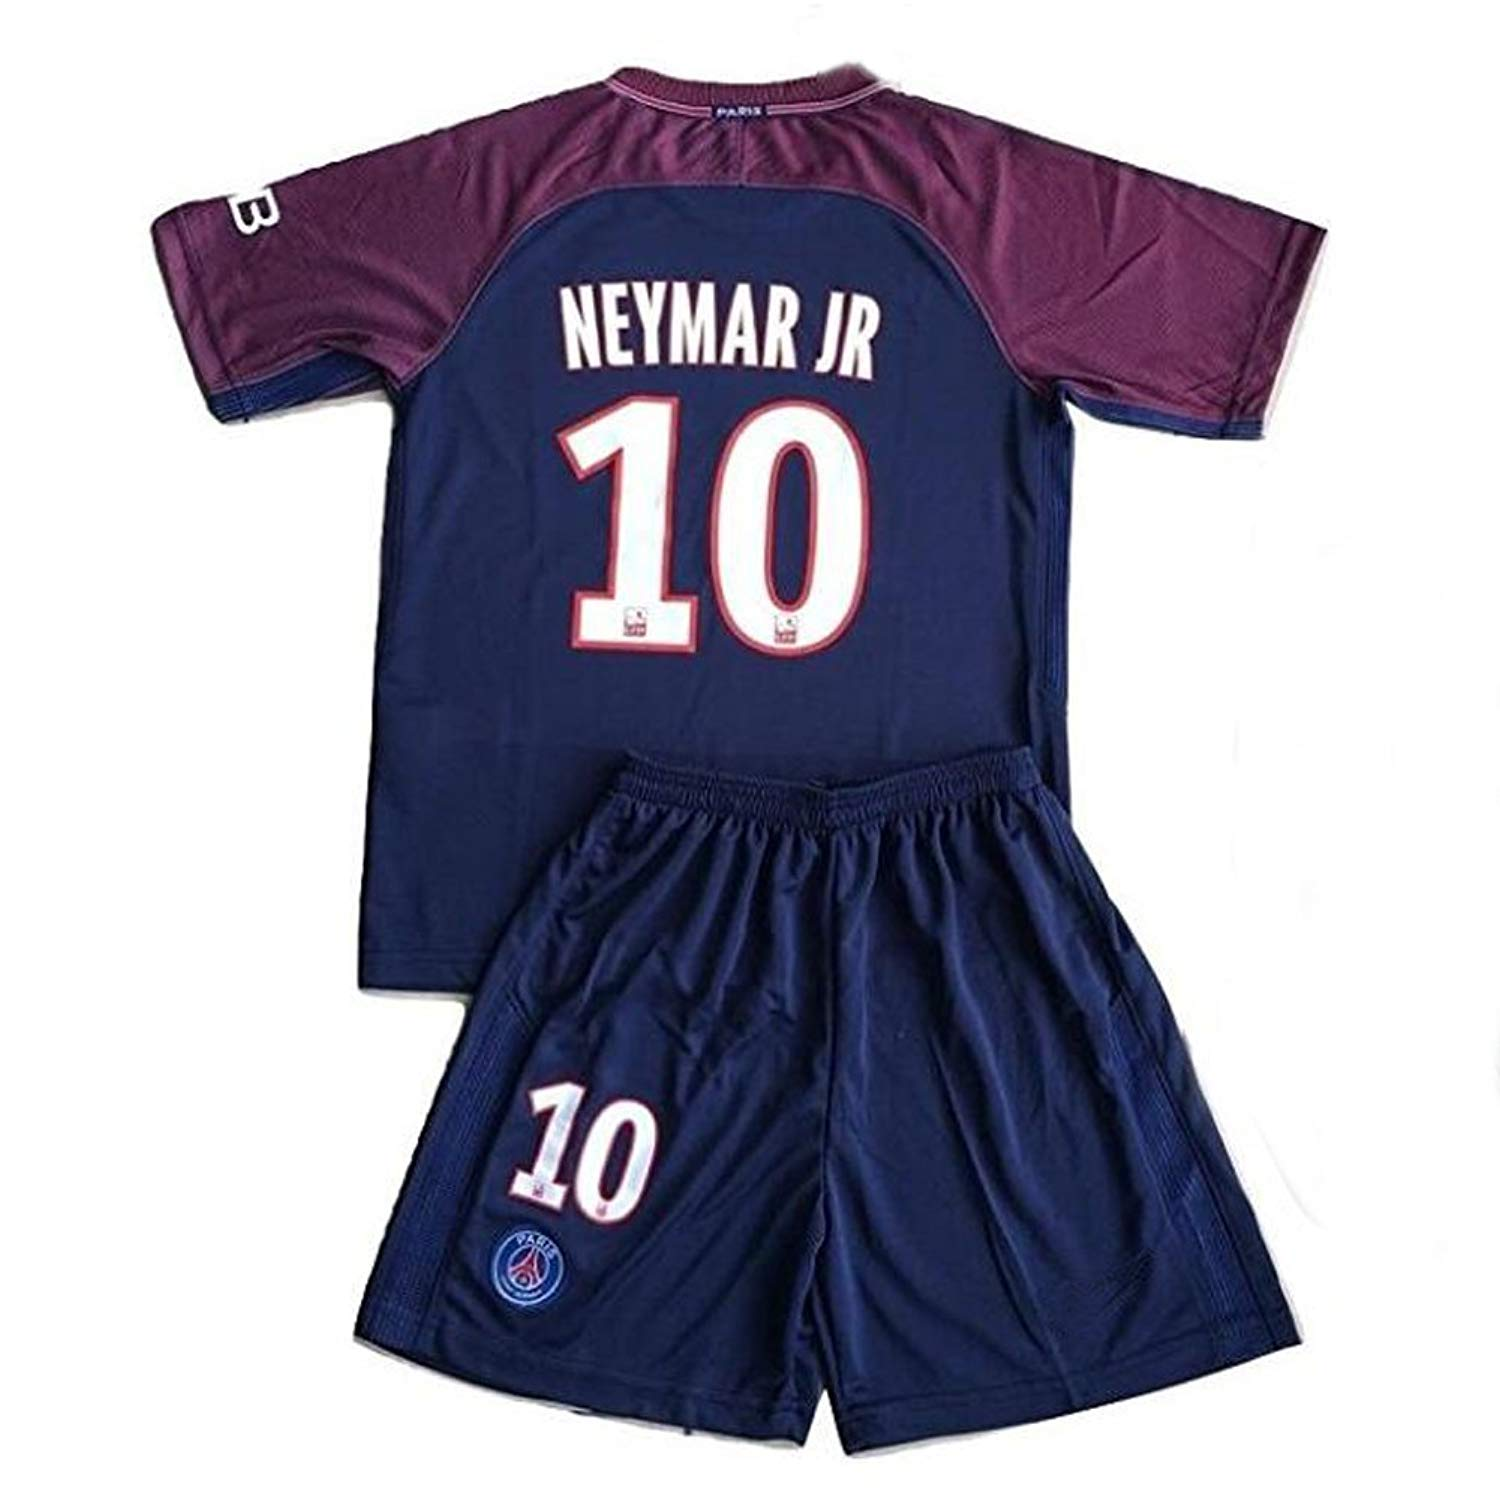 superior quality cbd92 adb04 Cheap Neymar Kids Jersey, find Neymar Kids Jersey deals on ...